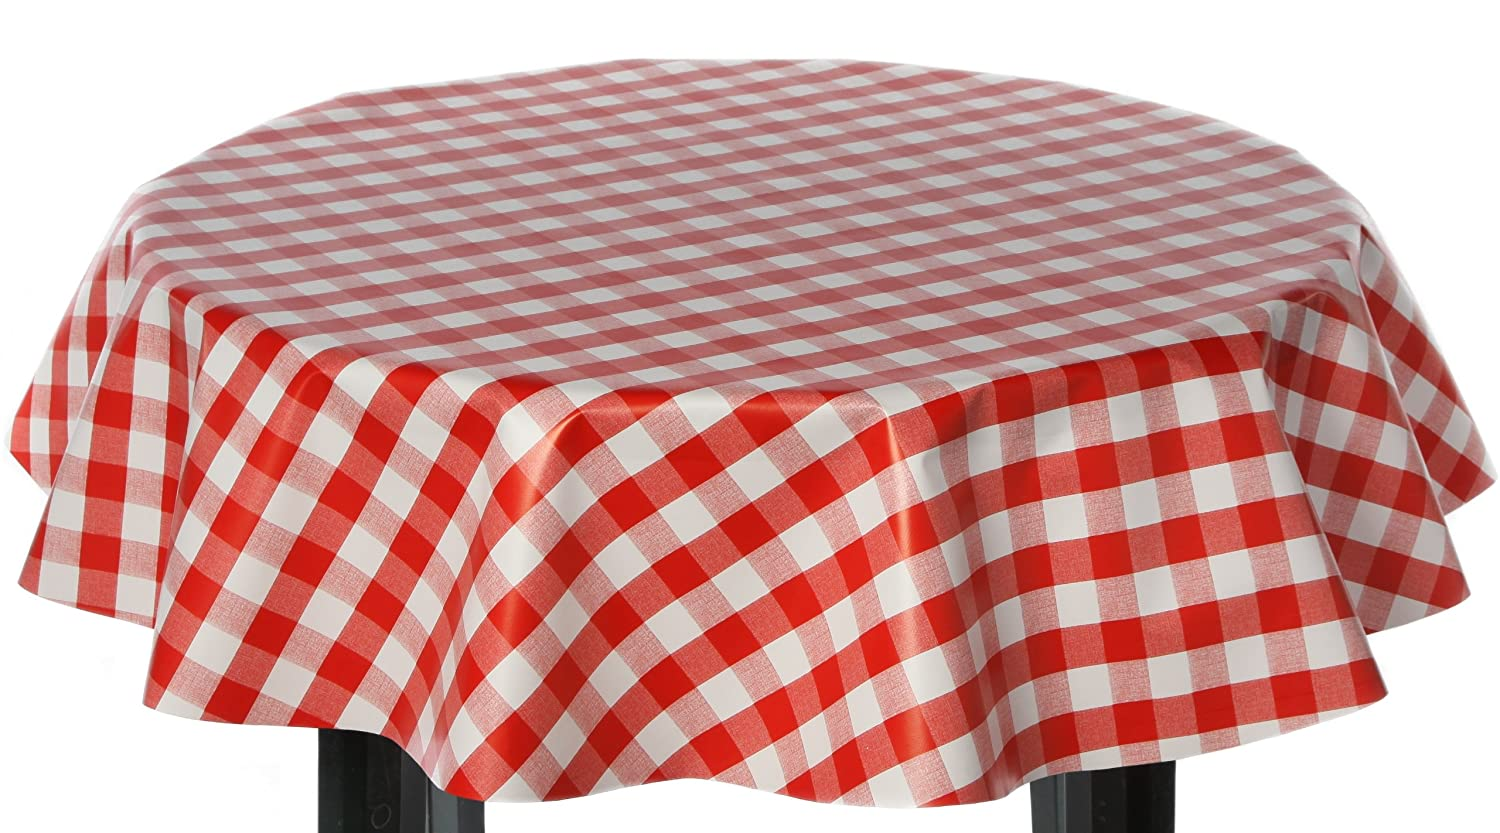 Round Vinyl Tablecloth 137cm Red Gingham Check Design: Amazon.co.uk:  Kitchen U0026 Home